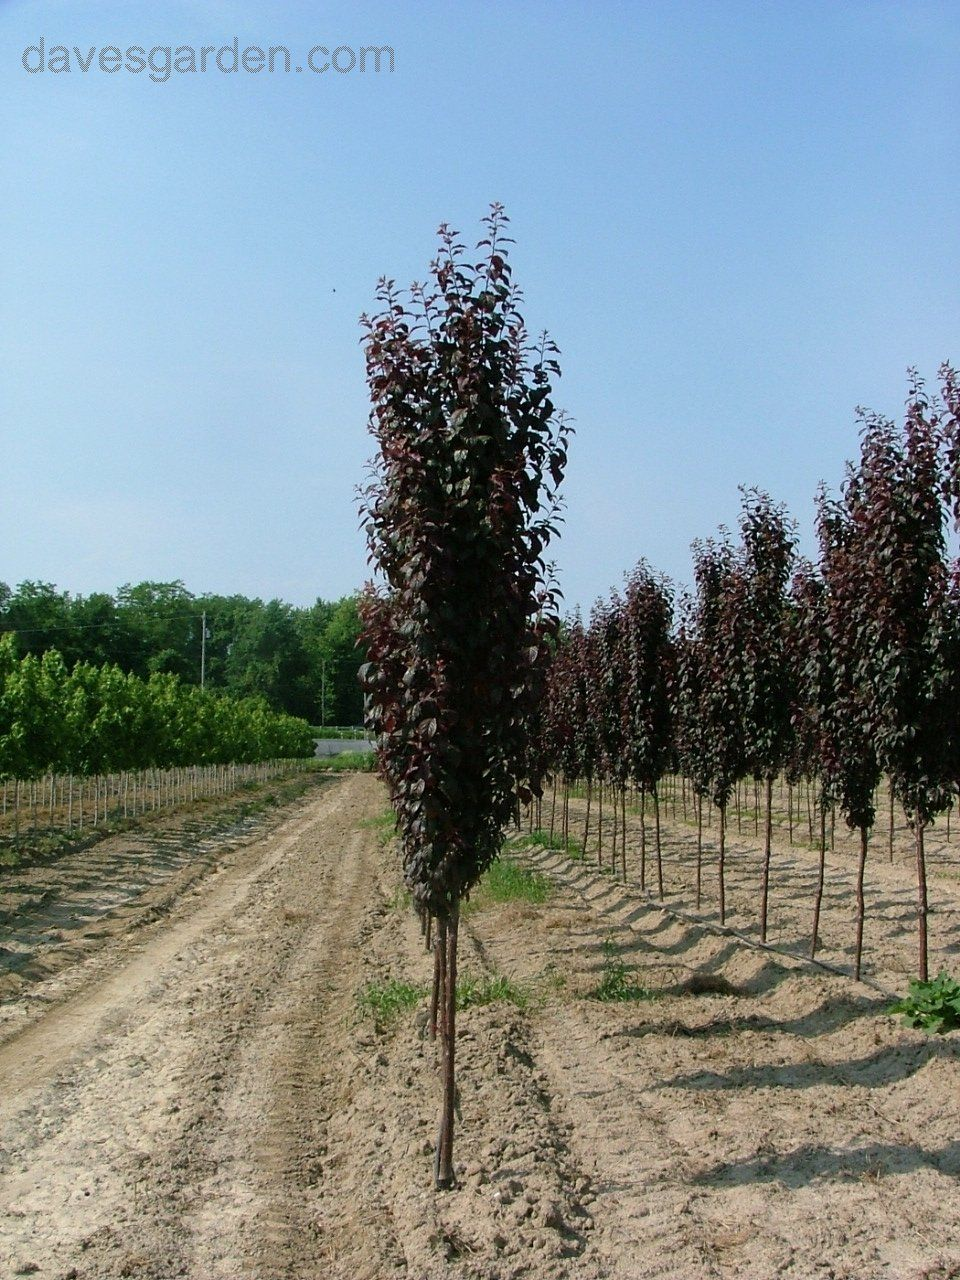 Based On What I Know About Trees That Are Grown In Southern California Nurseries Crimson Pointe Columnar Plum Should Be A Good Candidate